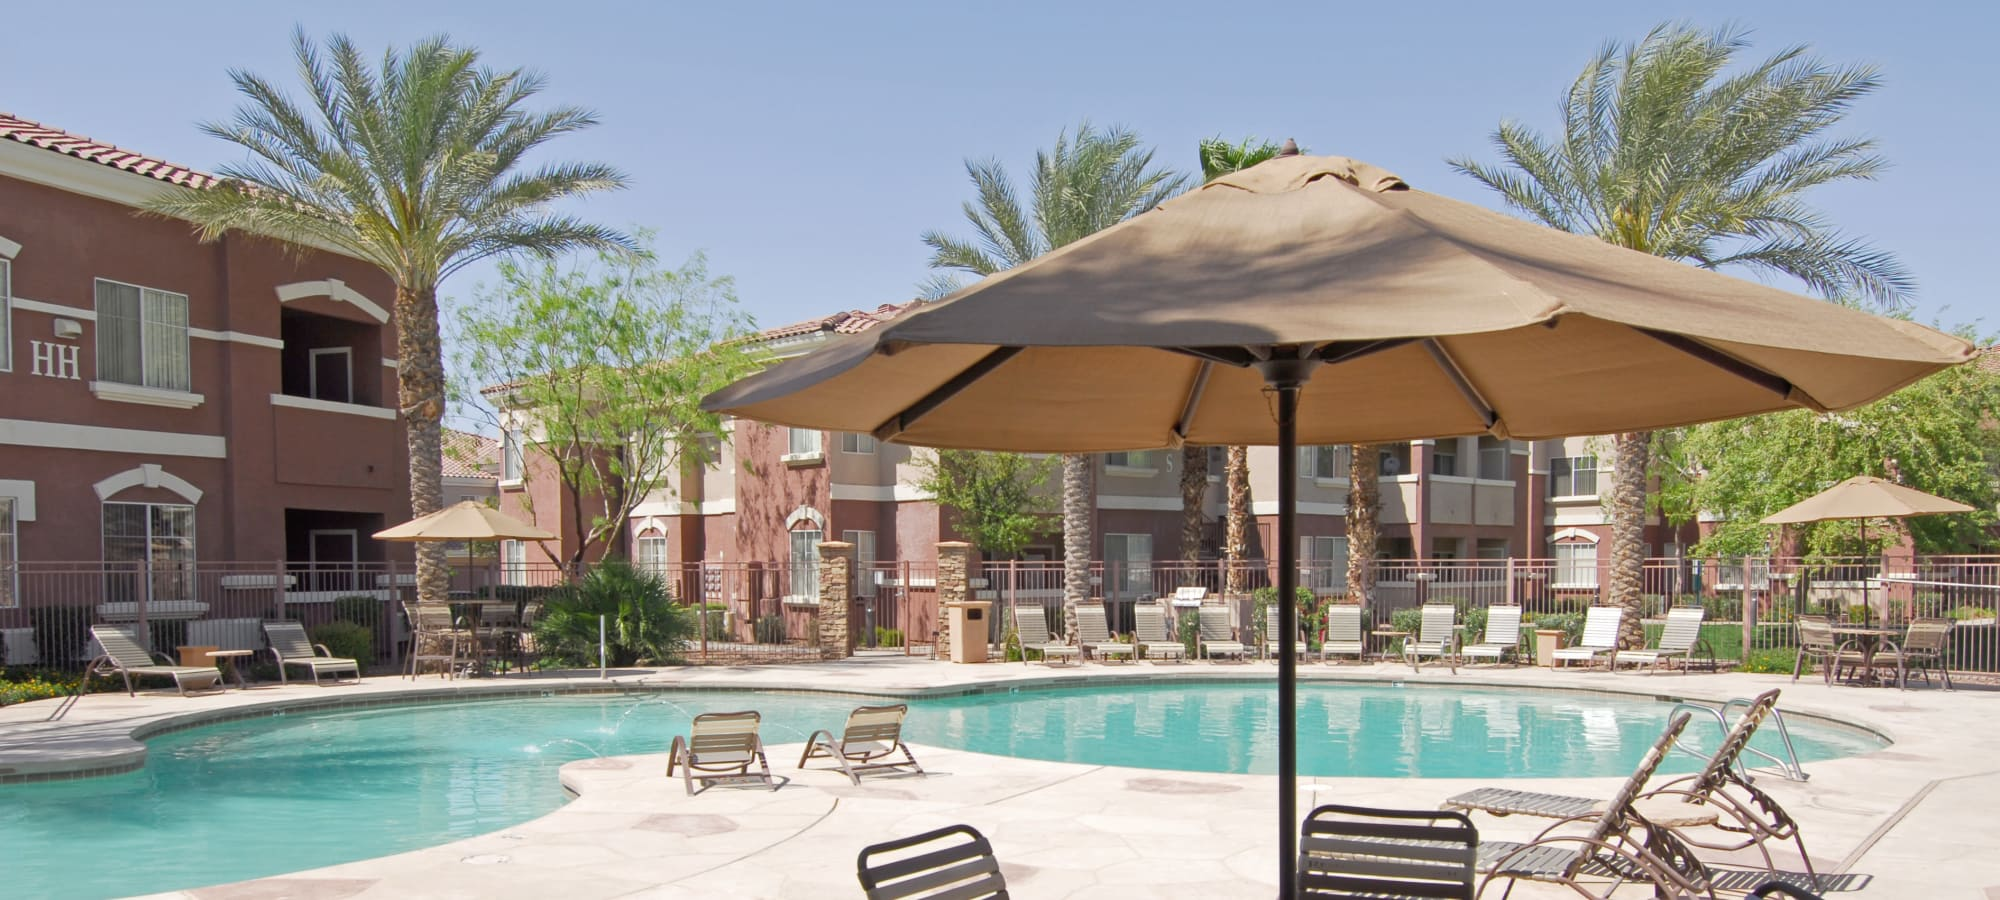 Swimming pool with shaded seating at Remington Ranch in Litchfield Park, Arizona